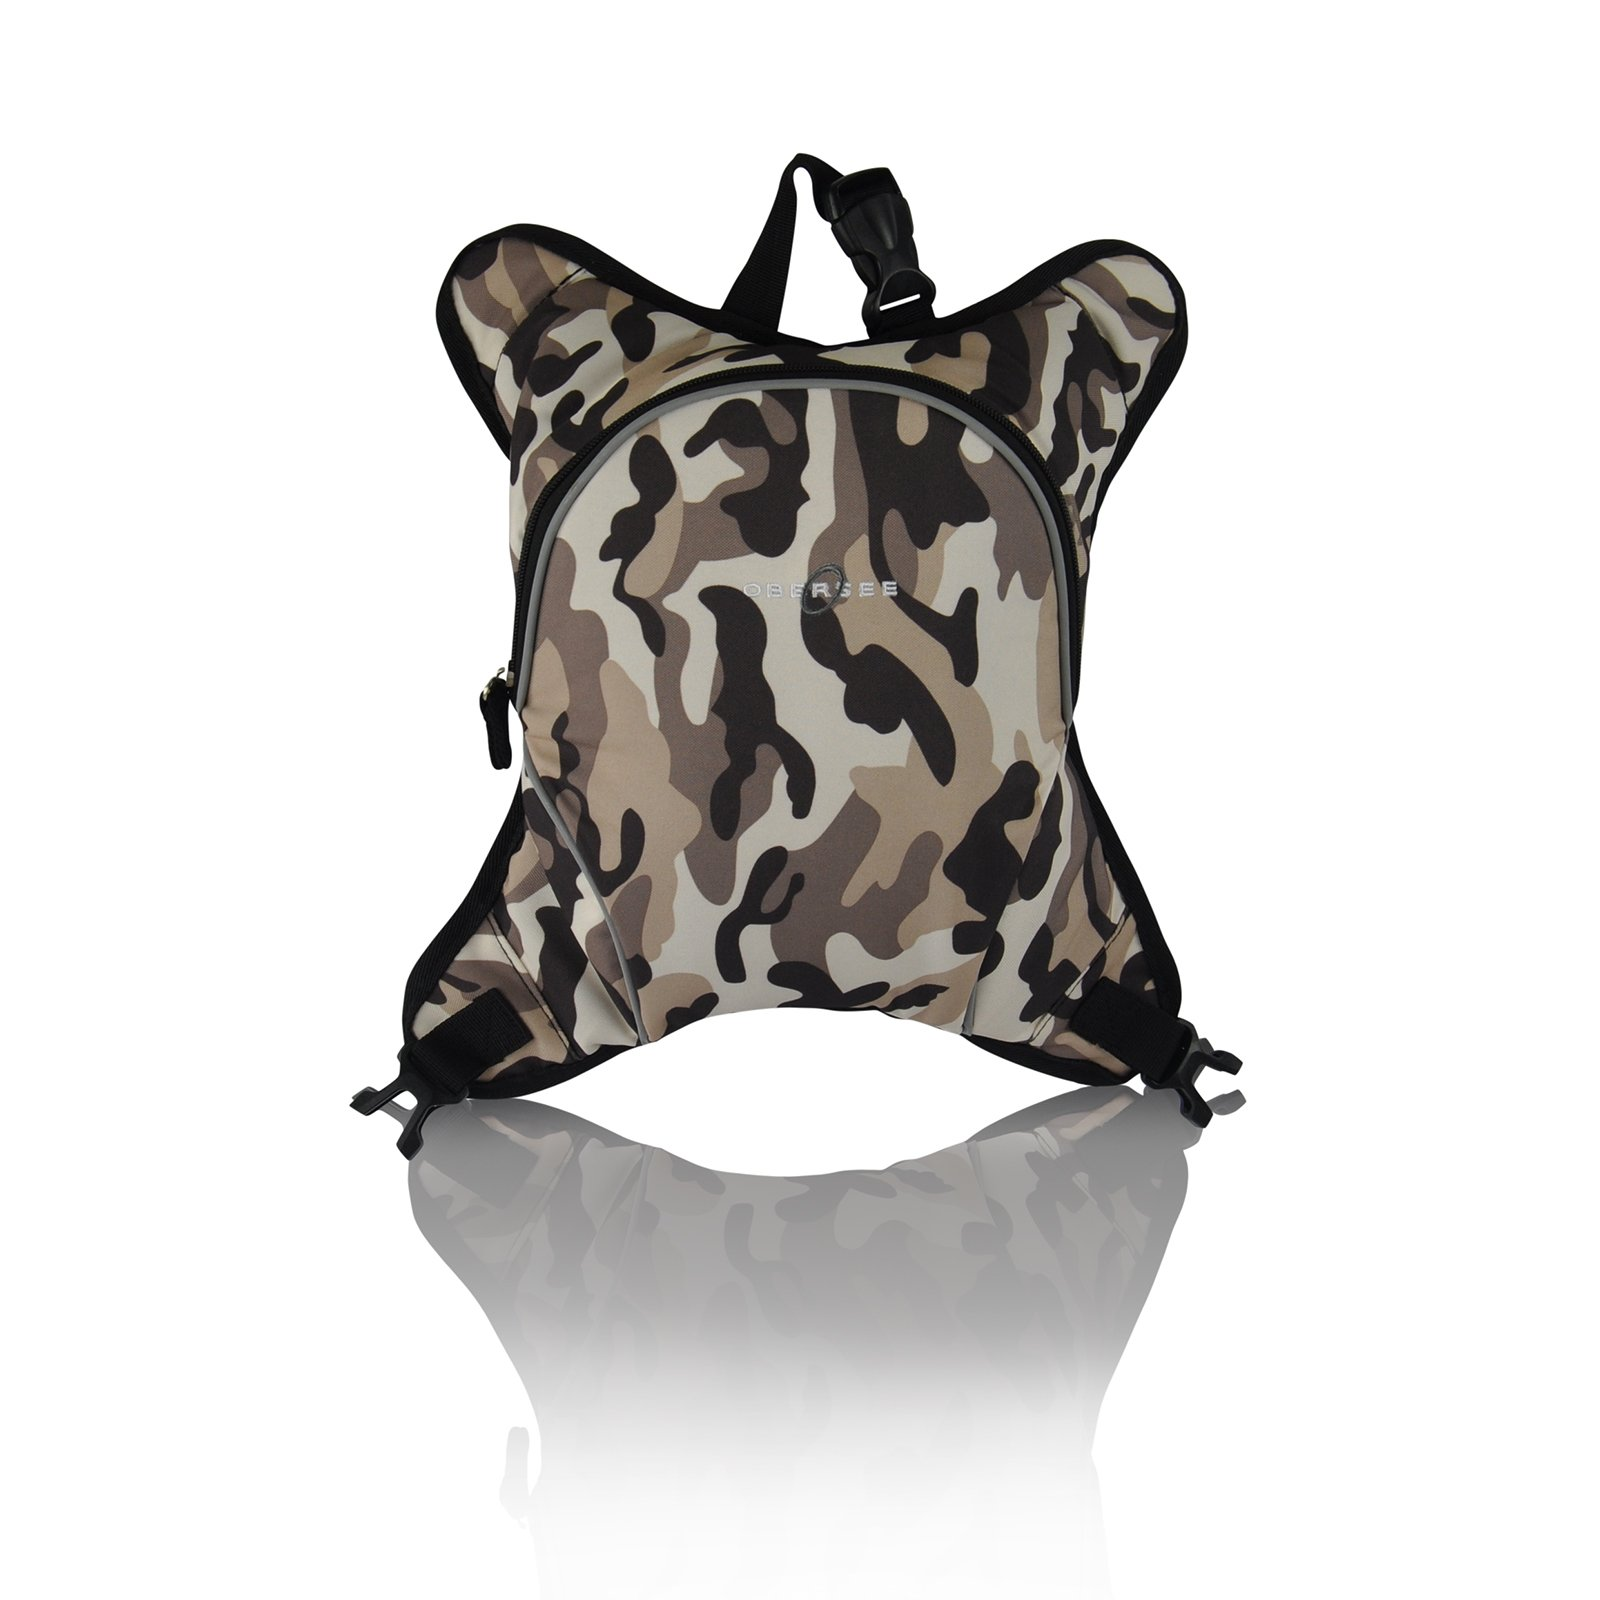 Baby Bottle Cooler Attachment for Obersee Backpack or Bag, Insulated Baby/Tot Bottle Carrier Camo